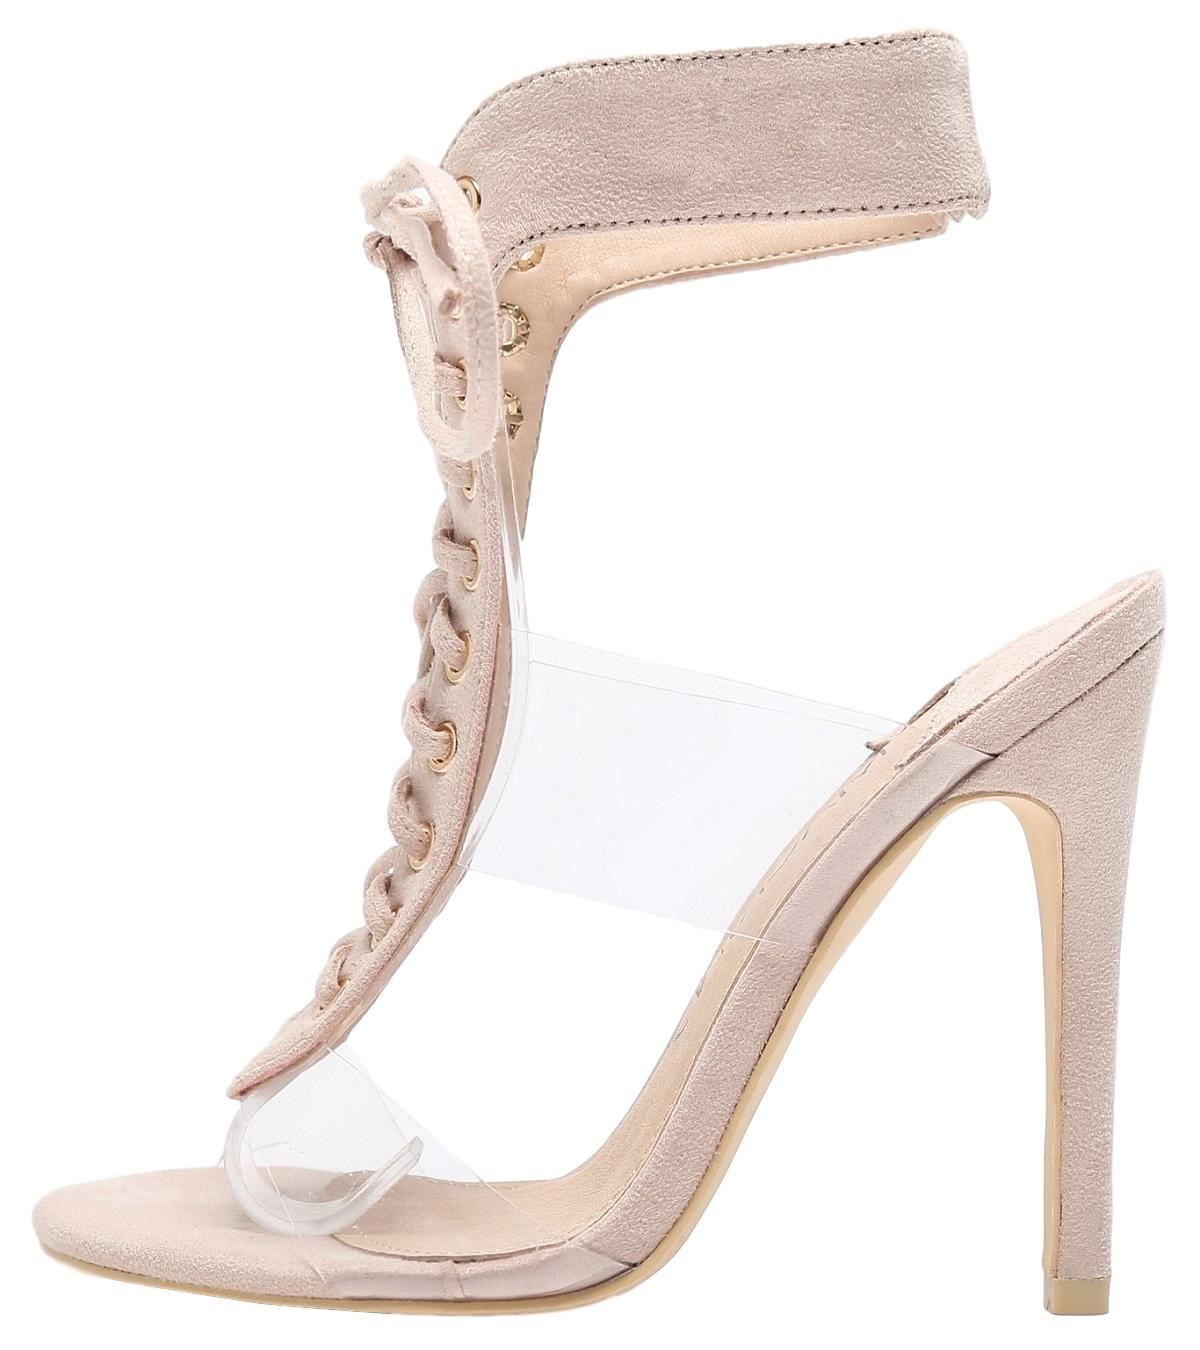 564e89fbee65 Mackin J 213-77 Lucite Clear PVC Open Toe Lace Up Stiletto High Heel Sandals